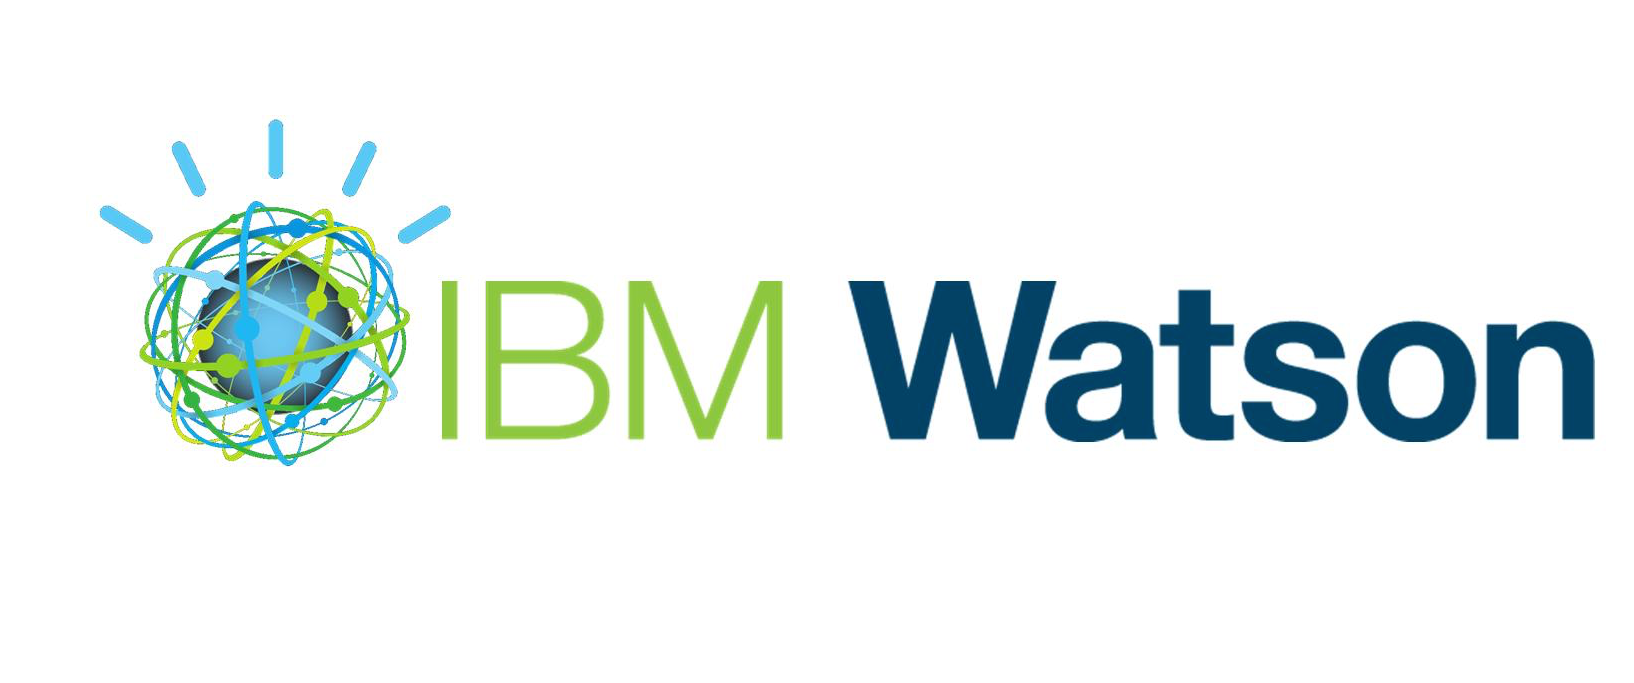 IBM Begins Using Watson AI to Buy Programmatically in the UK